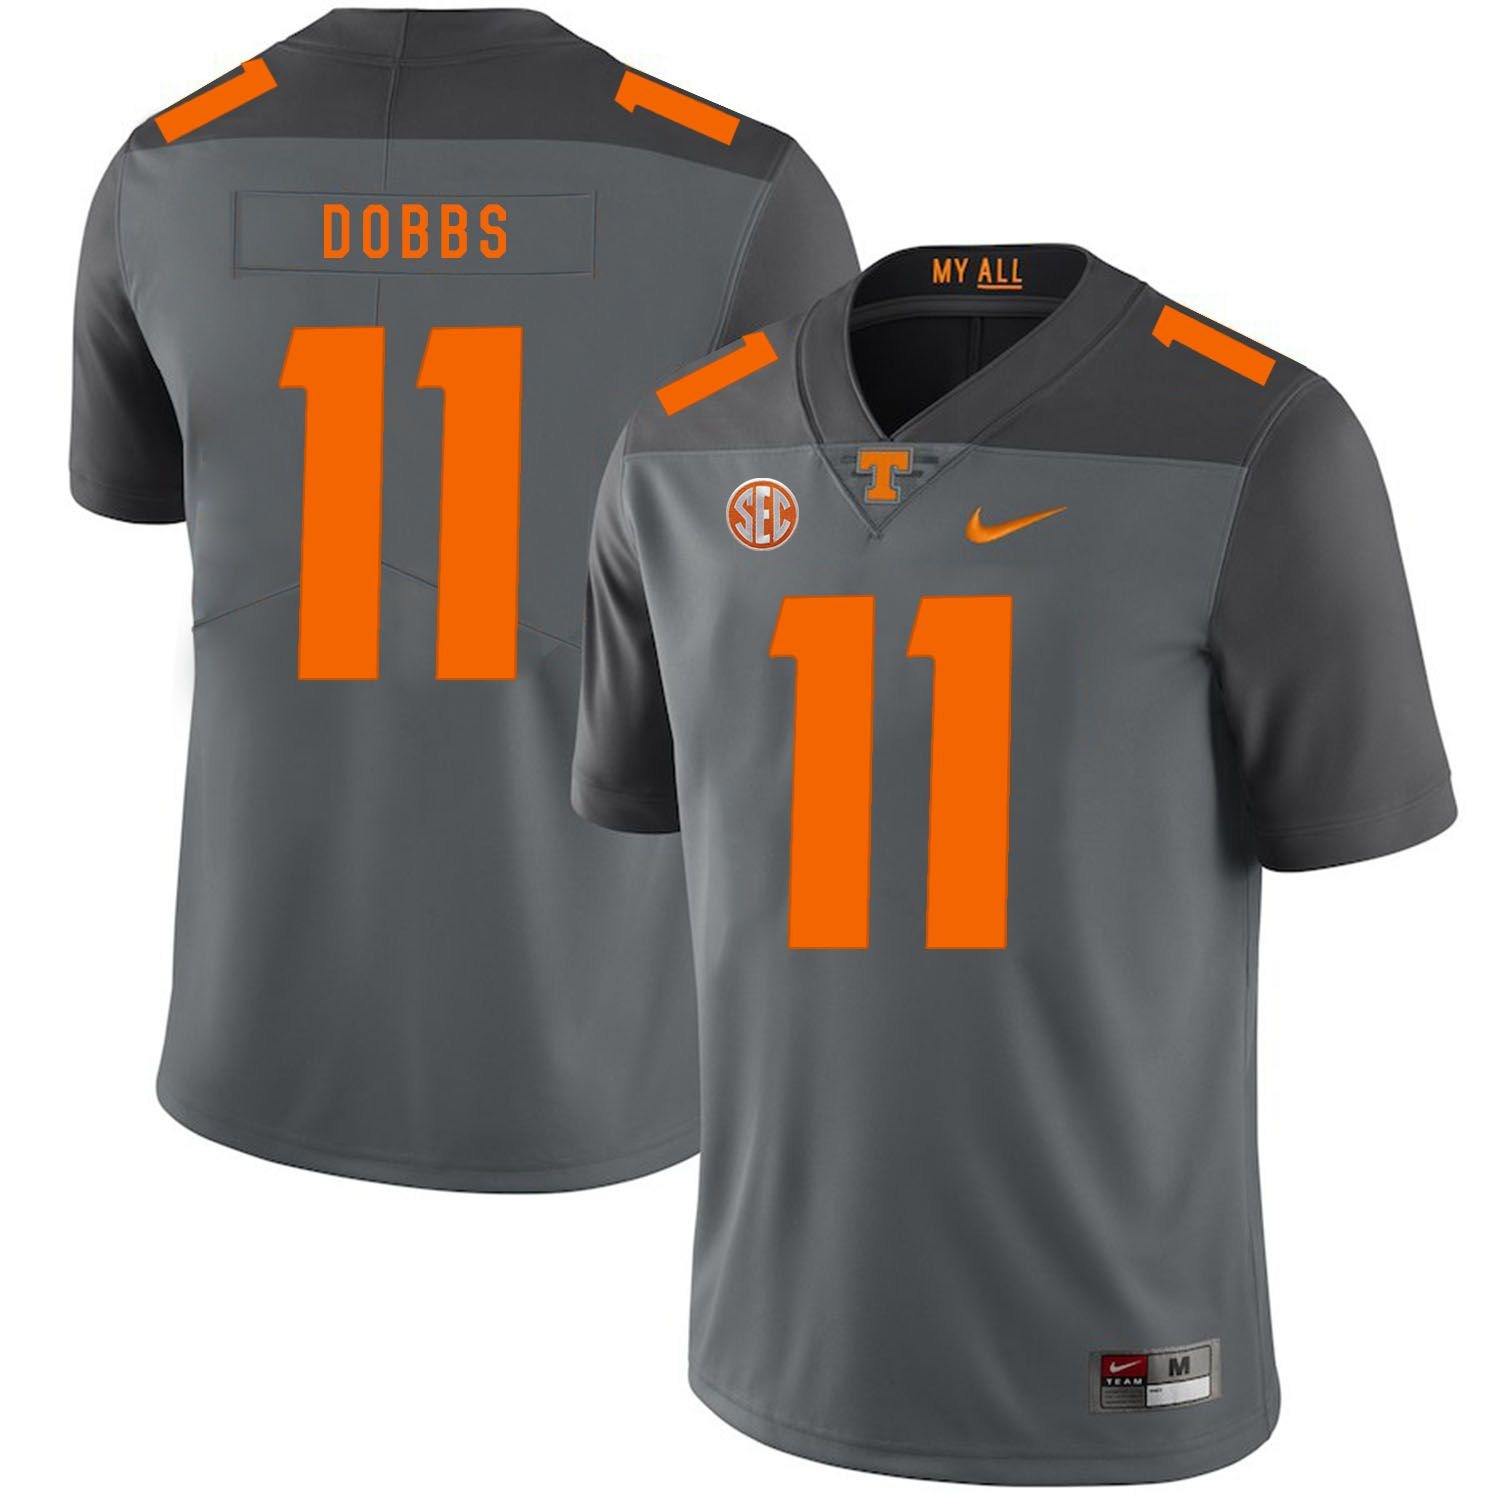 Men Tennessee Volunteers 11 Dobbs Grey Customized NCAA Jerseys